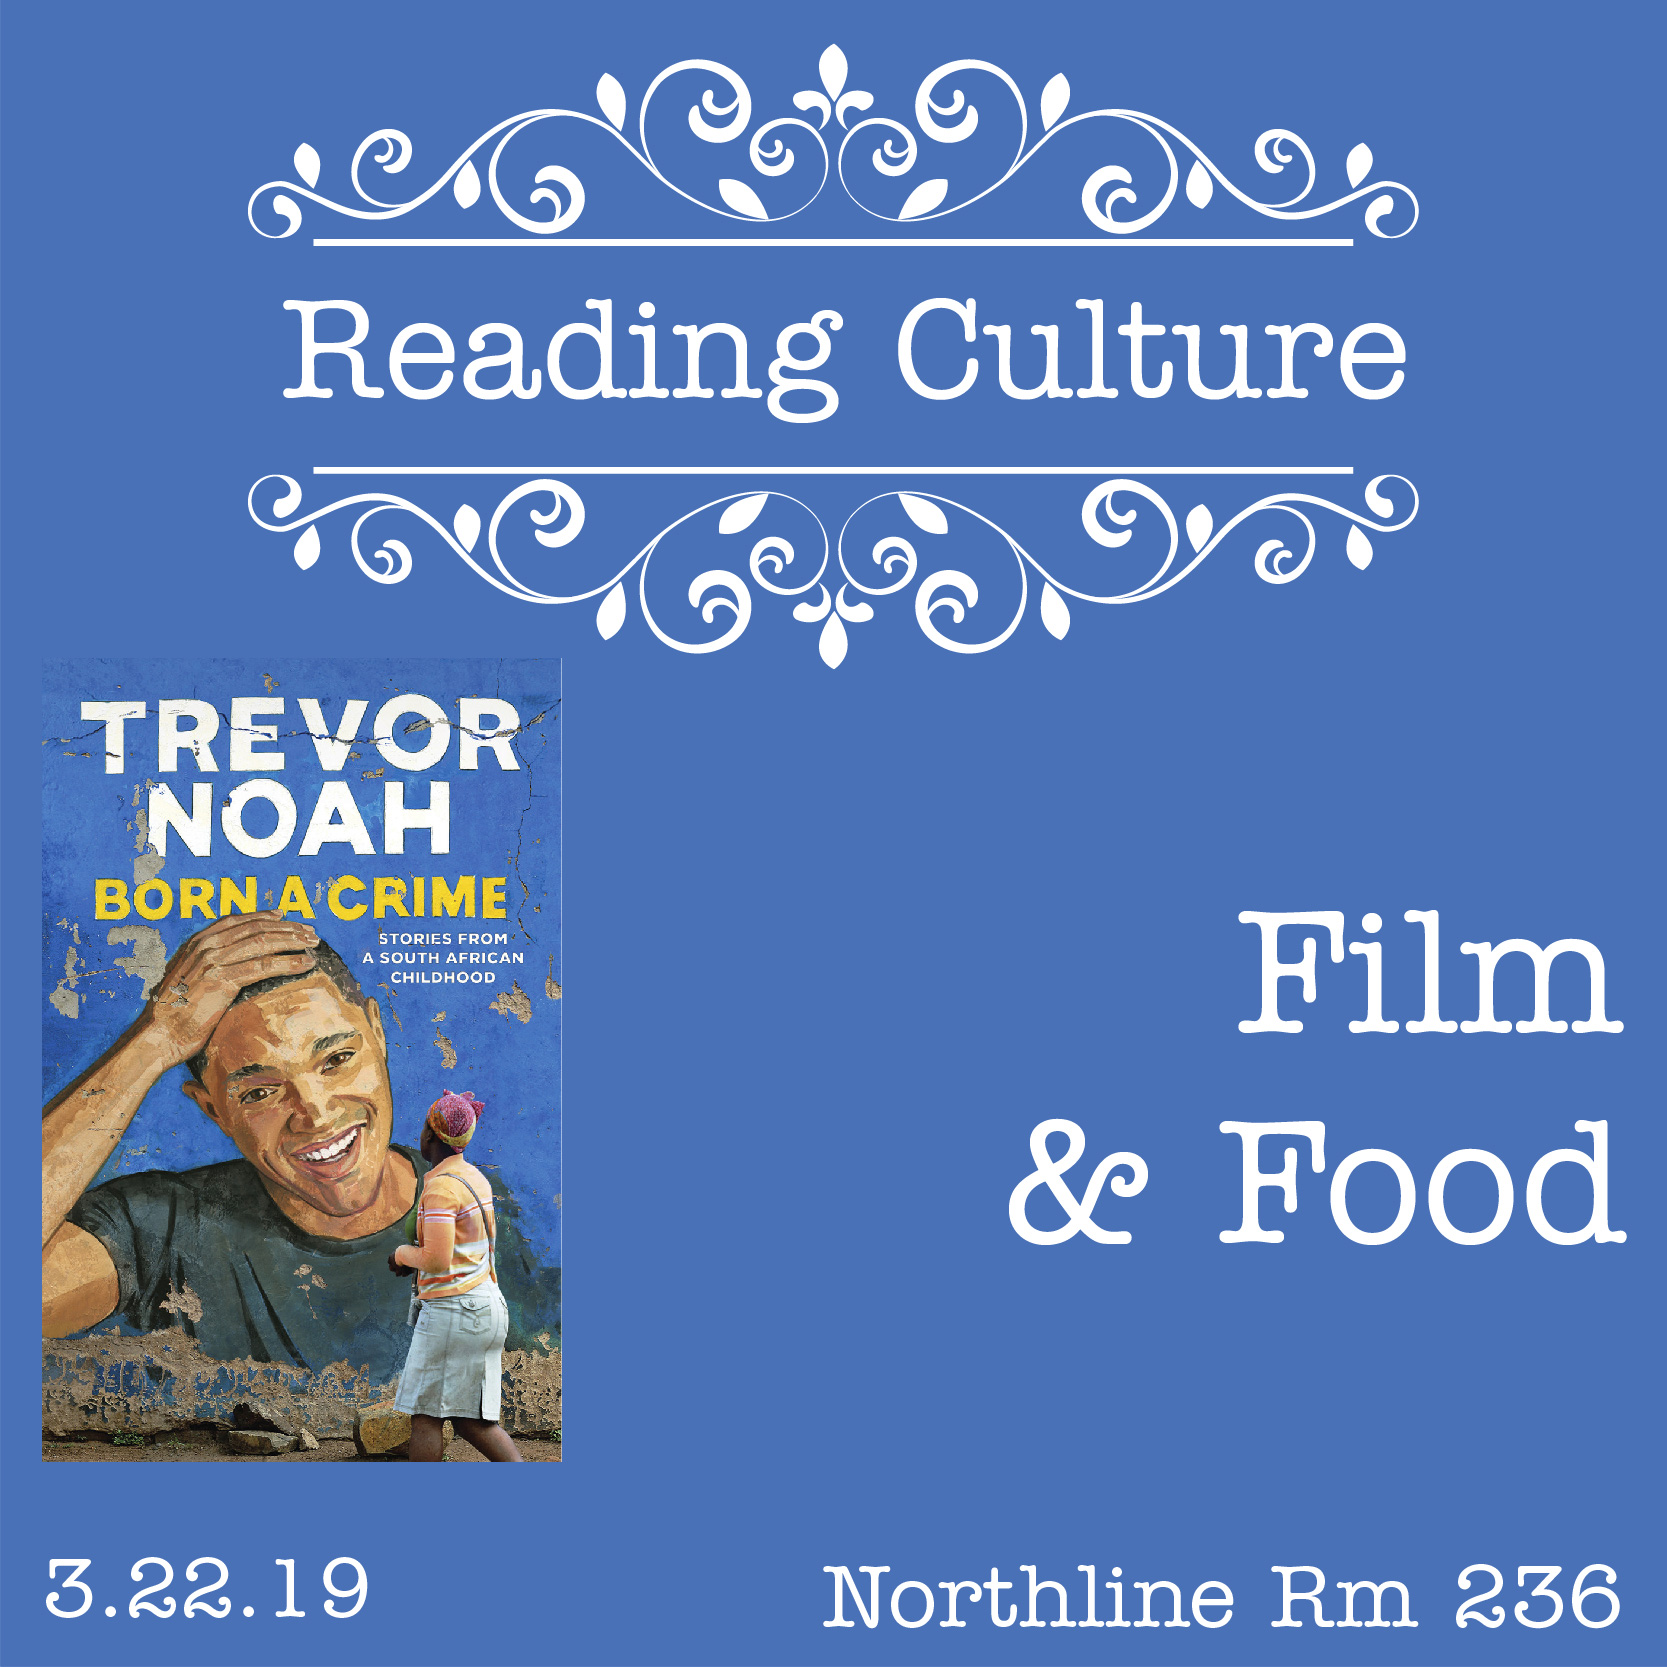 [NL] Reading Culture: Film & Food Night